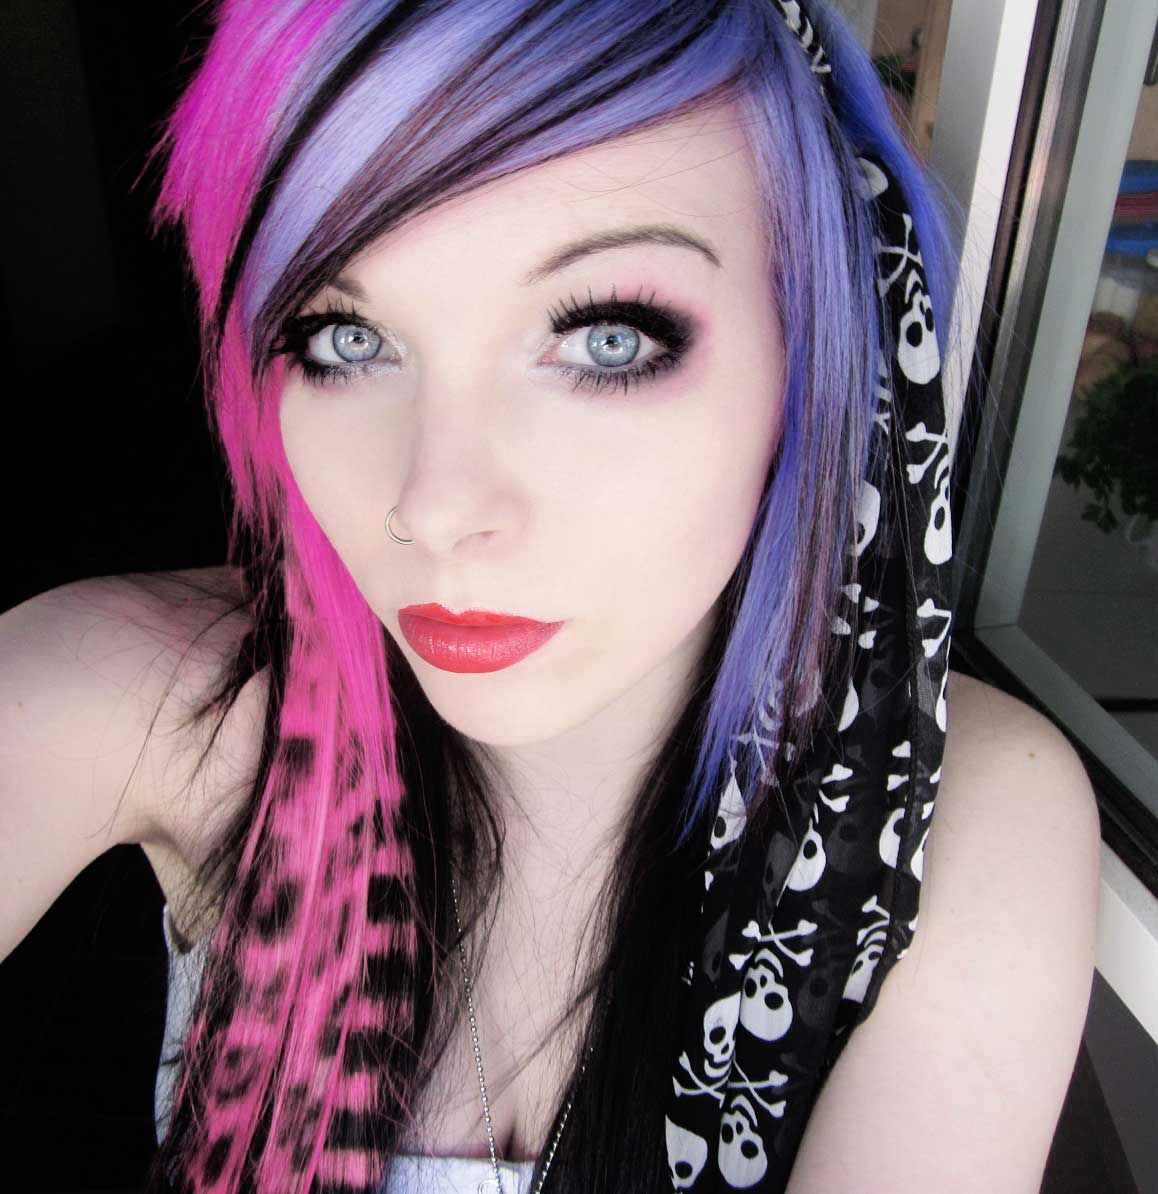 Emo Images Emo Girl Ira Vampira Scene Queen Colorful